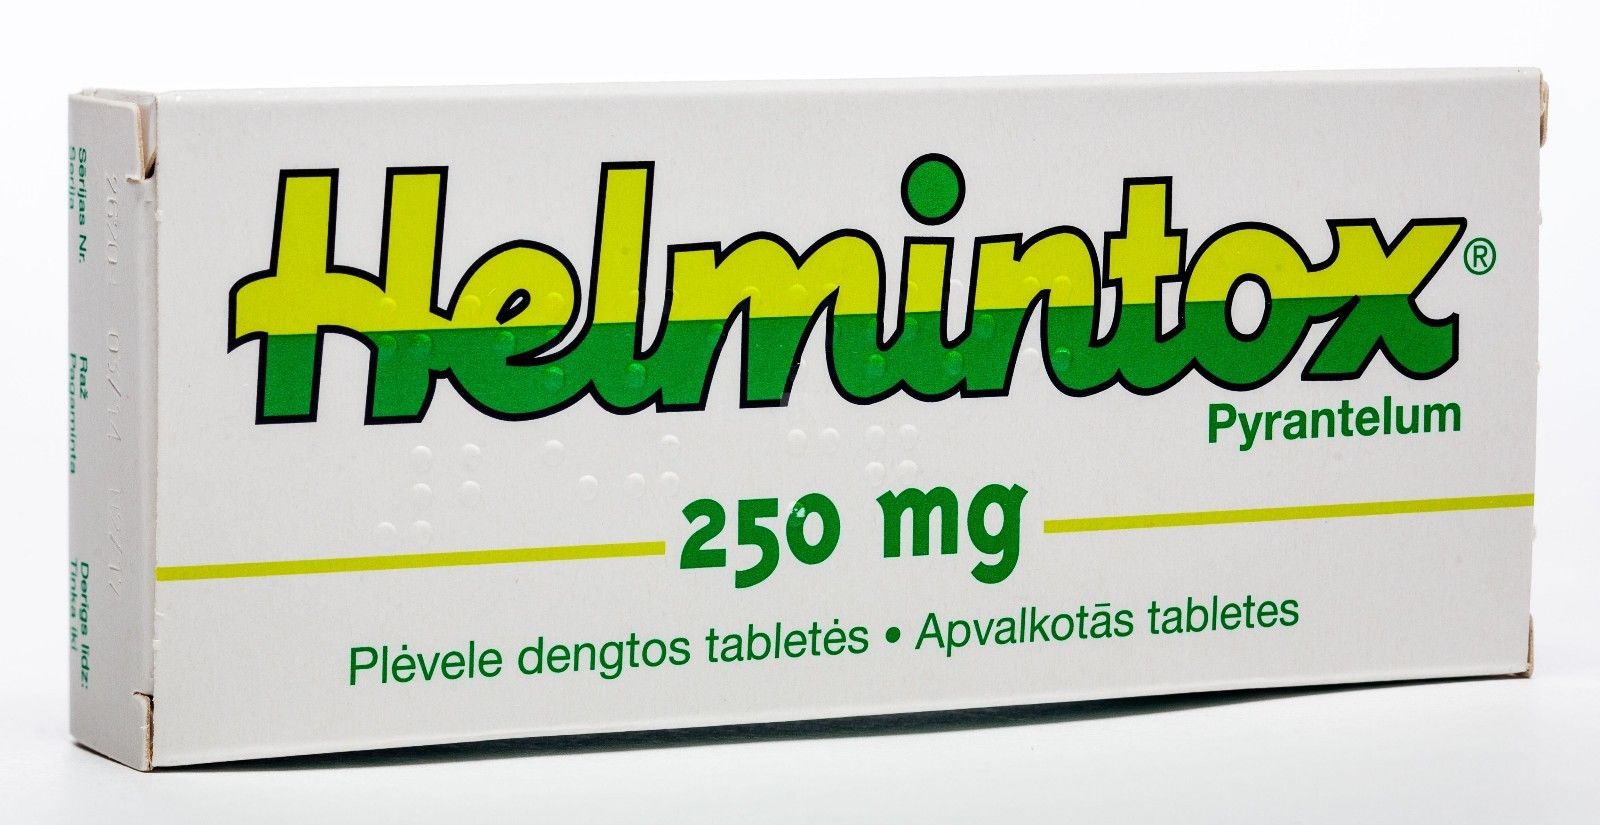 uses of helmintox